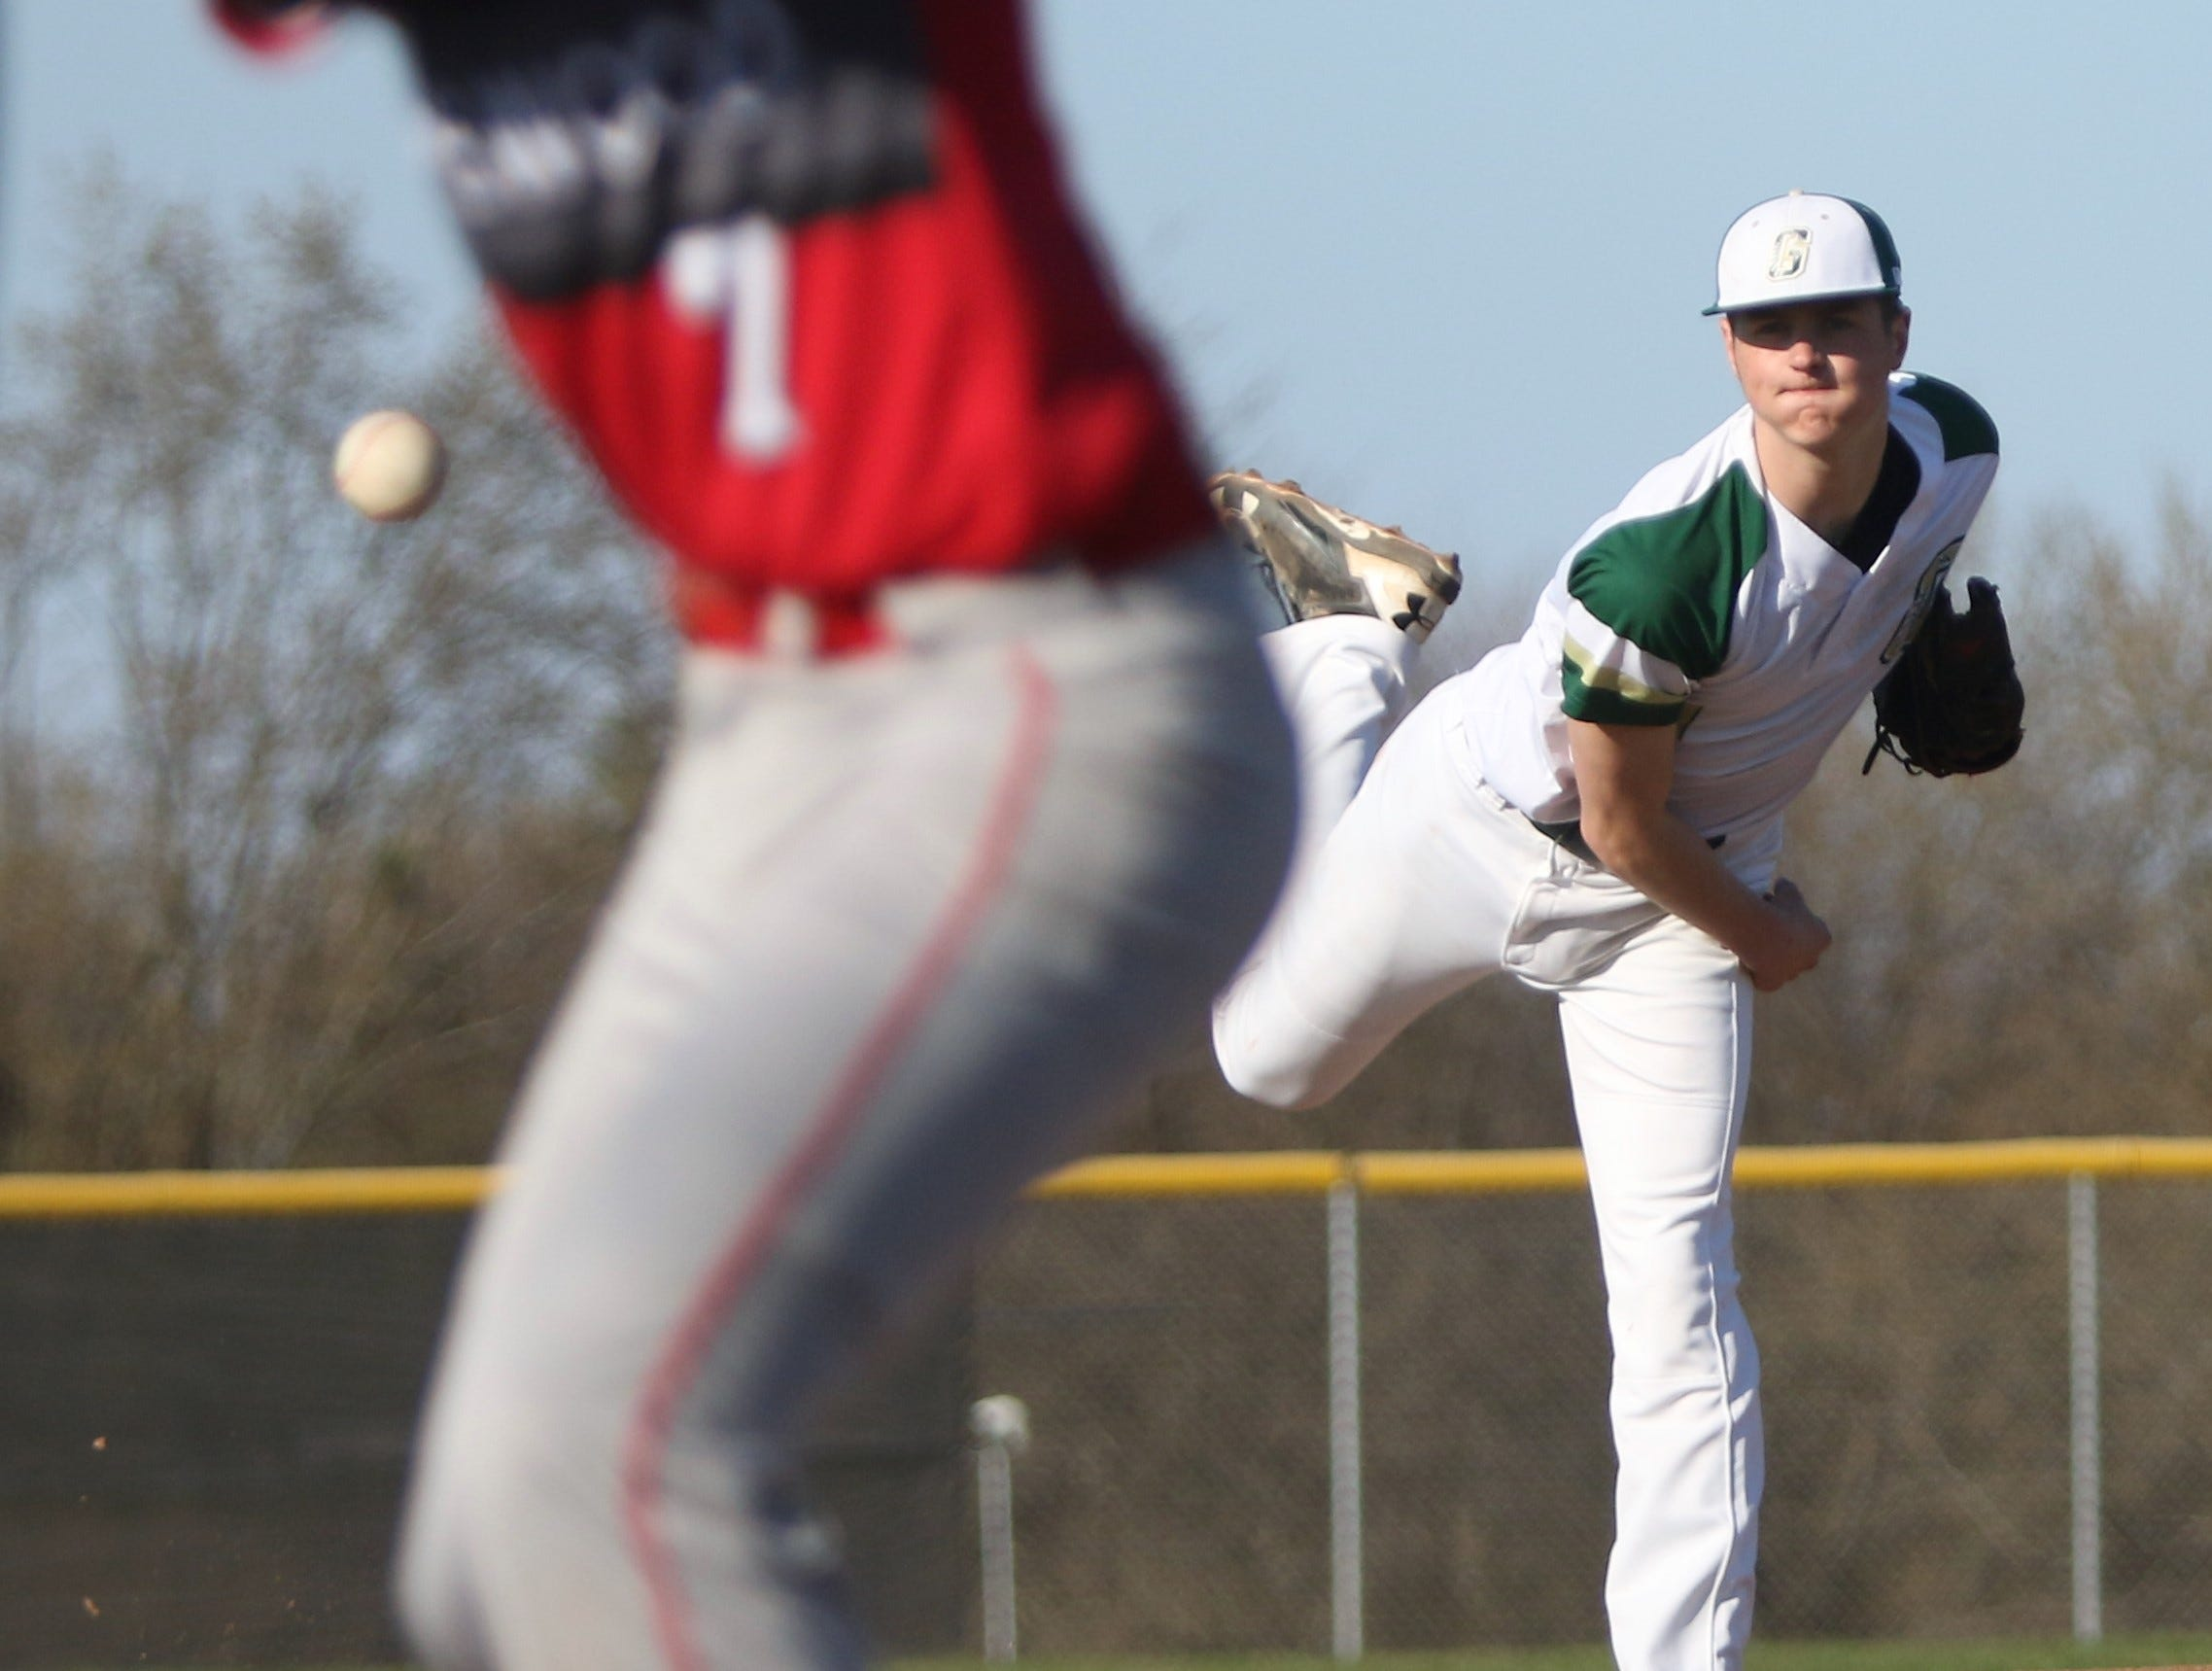 Greenfield pitcher Tyler Graf watches as his delivery heads toward home plate against Shorewood on April 24, 2019.